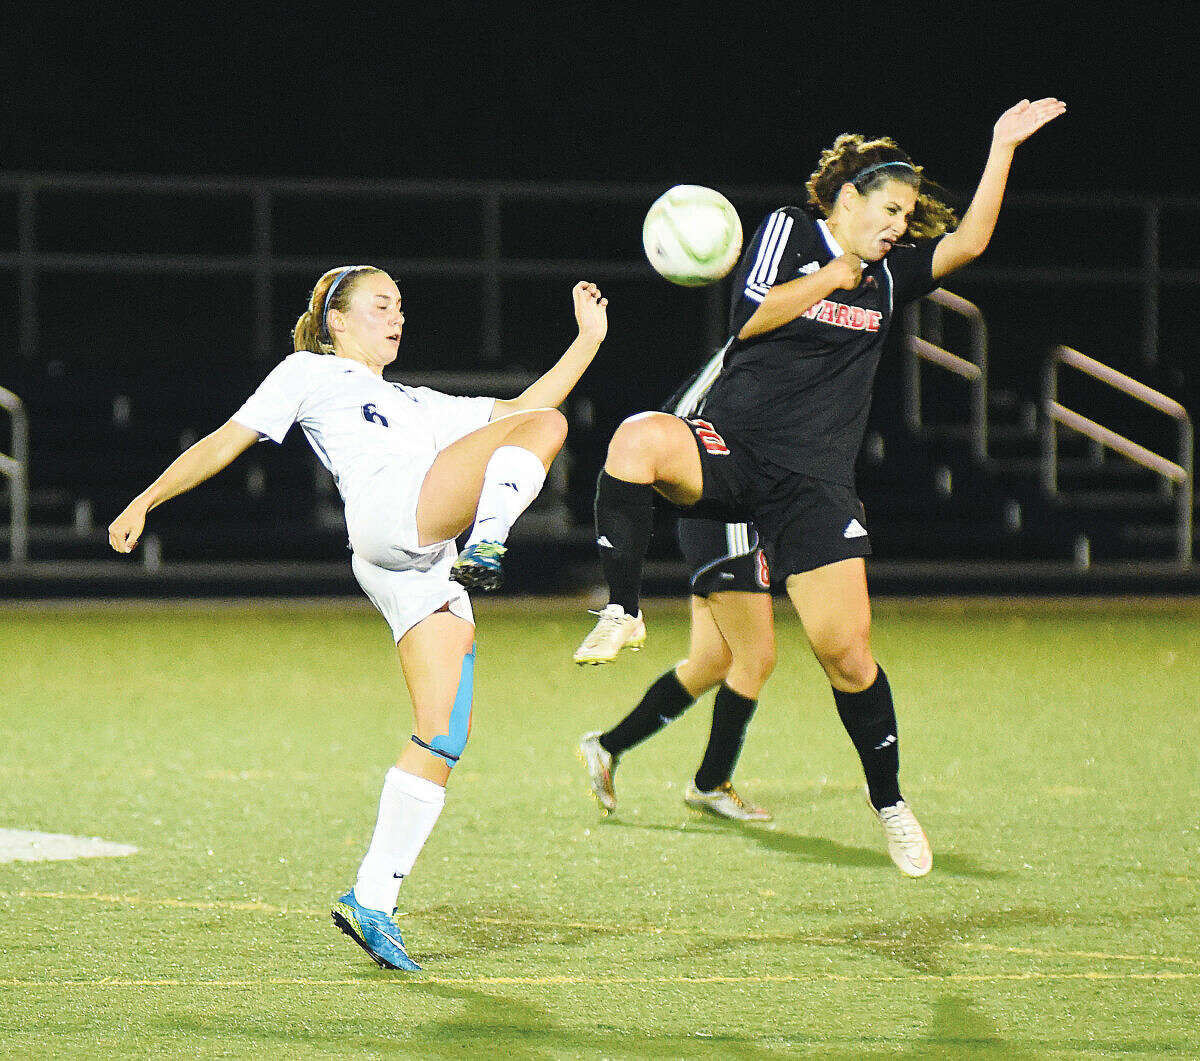 Hour photo/John Nash - Wilton's Lyndsey Groves, left, and Fairfield Warde's Amelia Andrews during Thursday's FCIAC girls soccer game at Lilly Field in Wilton.